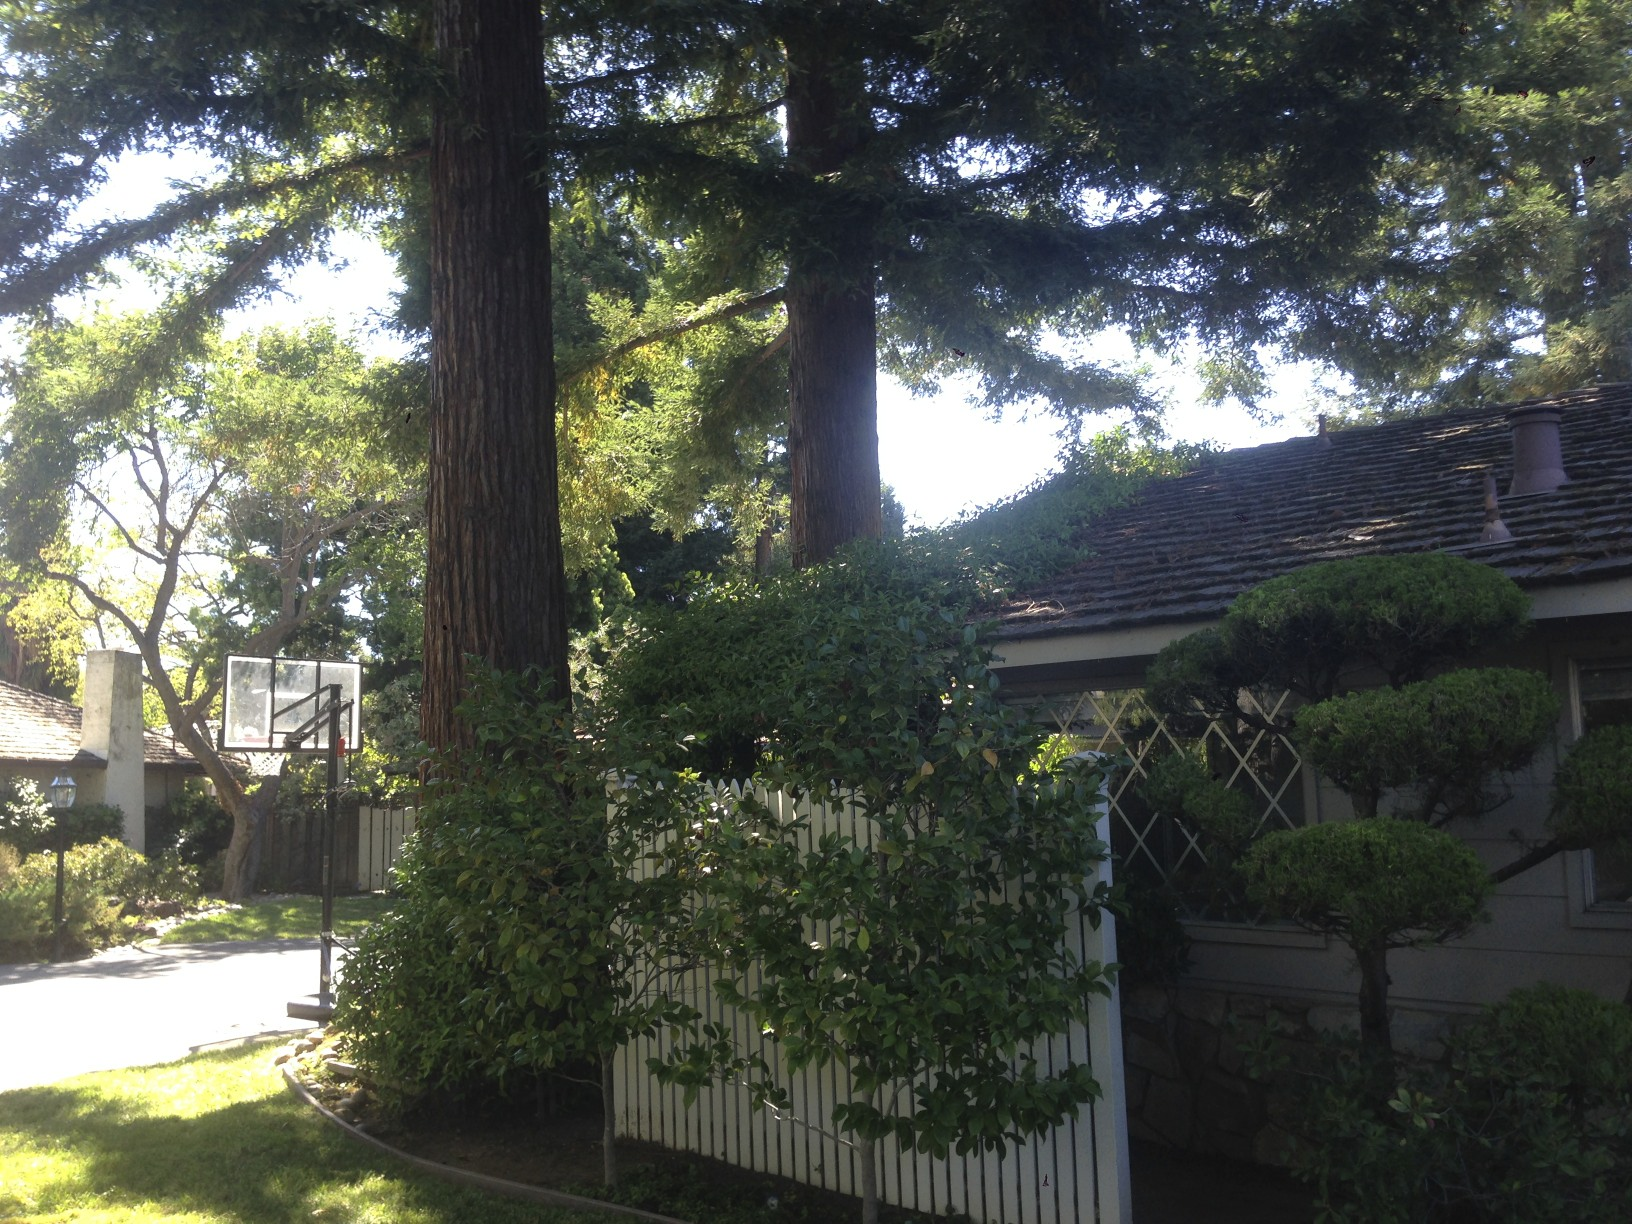 Landscaping With Redwood Trees : Pics redwood trees too close to the house redwoods g